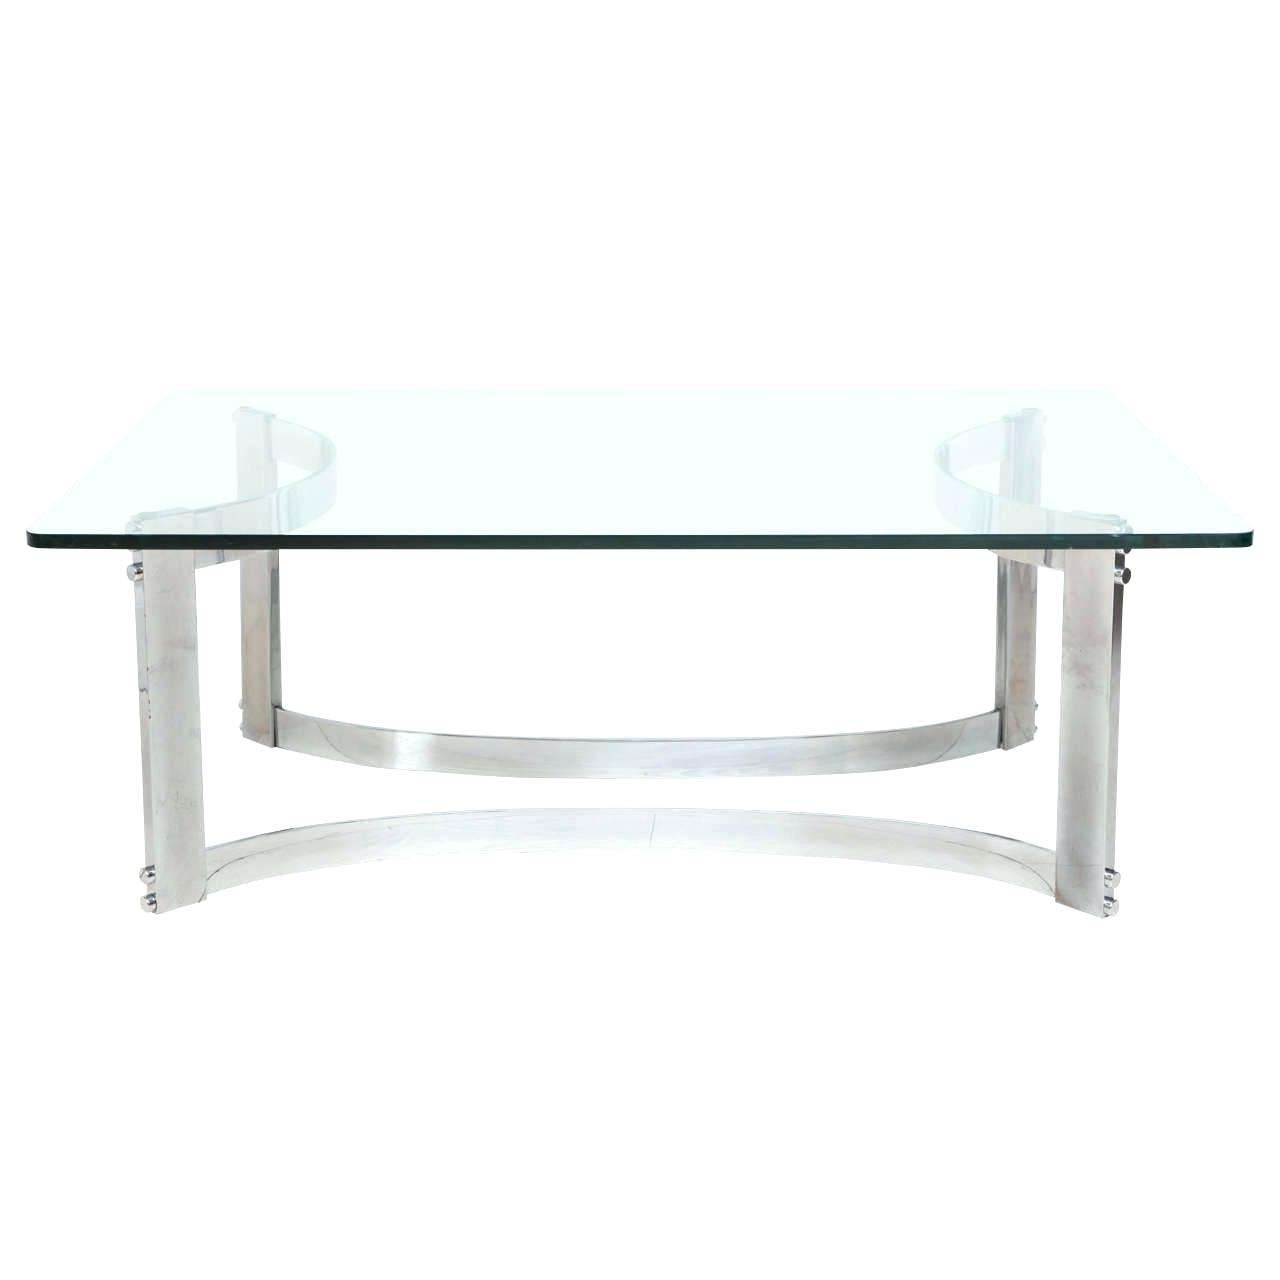 Rectangular Glass Coffee Tables Full Size Of Table End For Wood Inside Favorite Elise Coffee Tables (View 4 of 20)